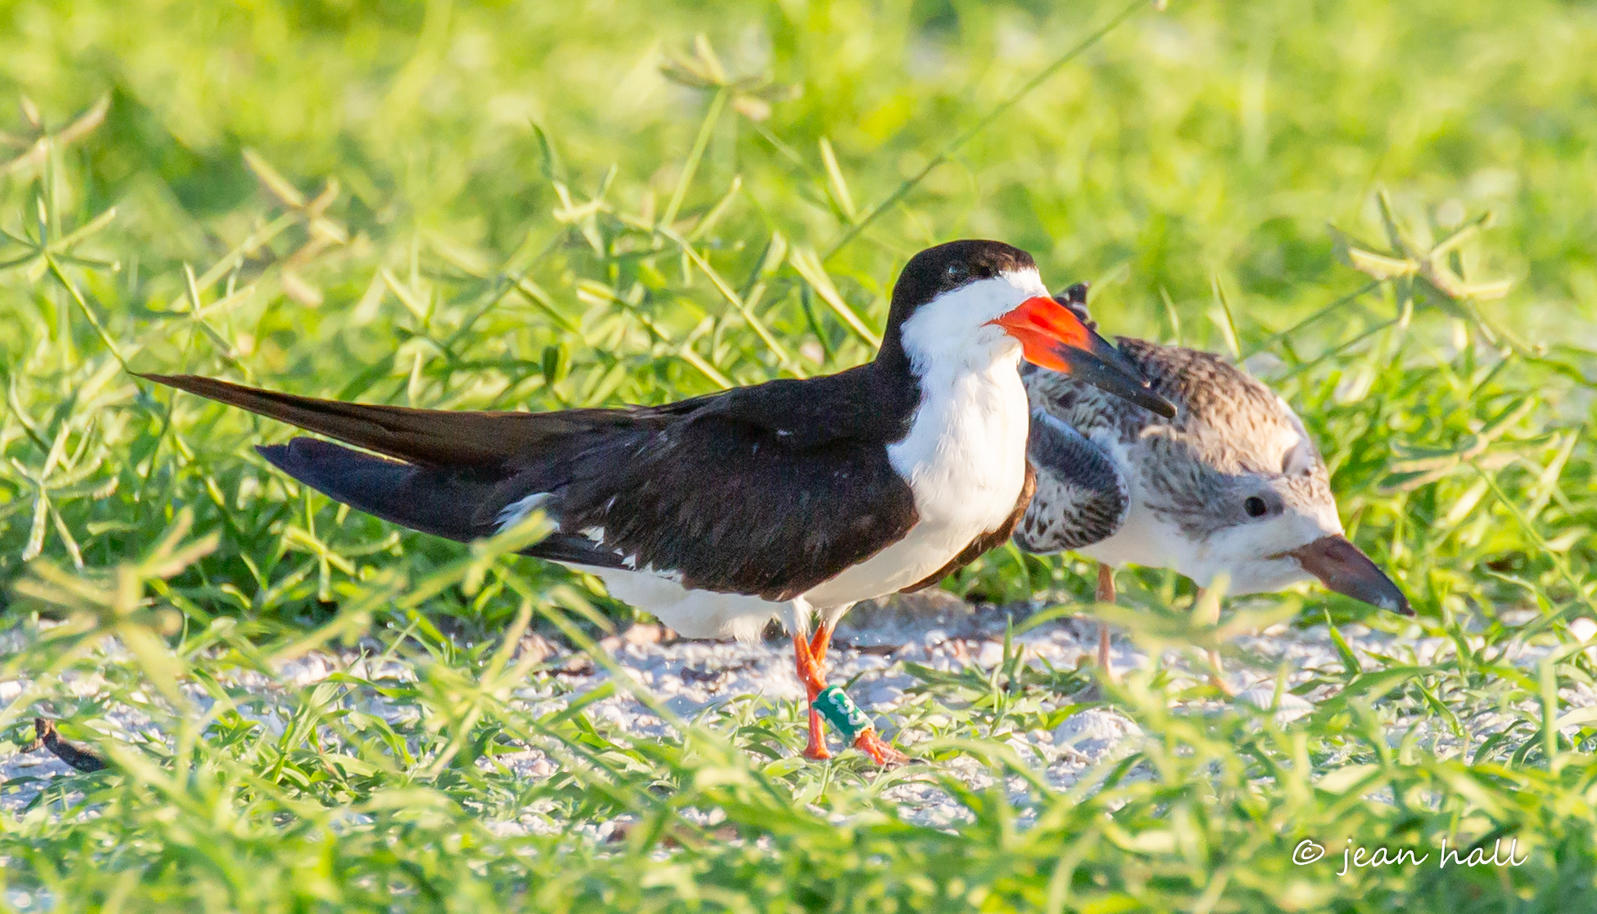 Black Skimmer and chick. Photo: Jean Hall.